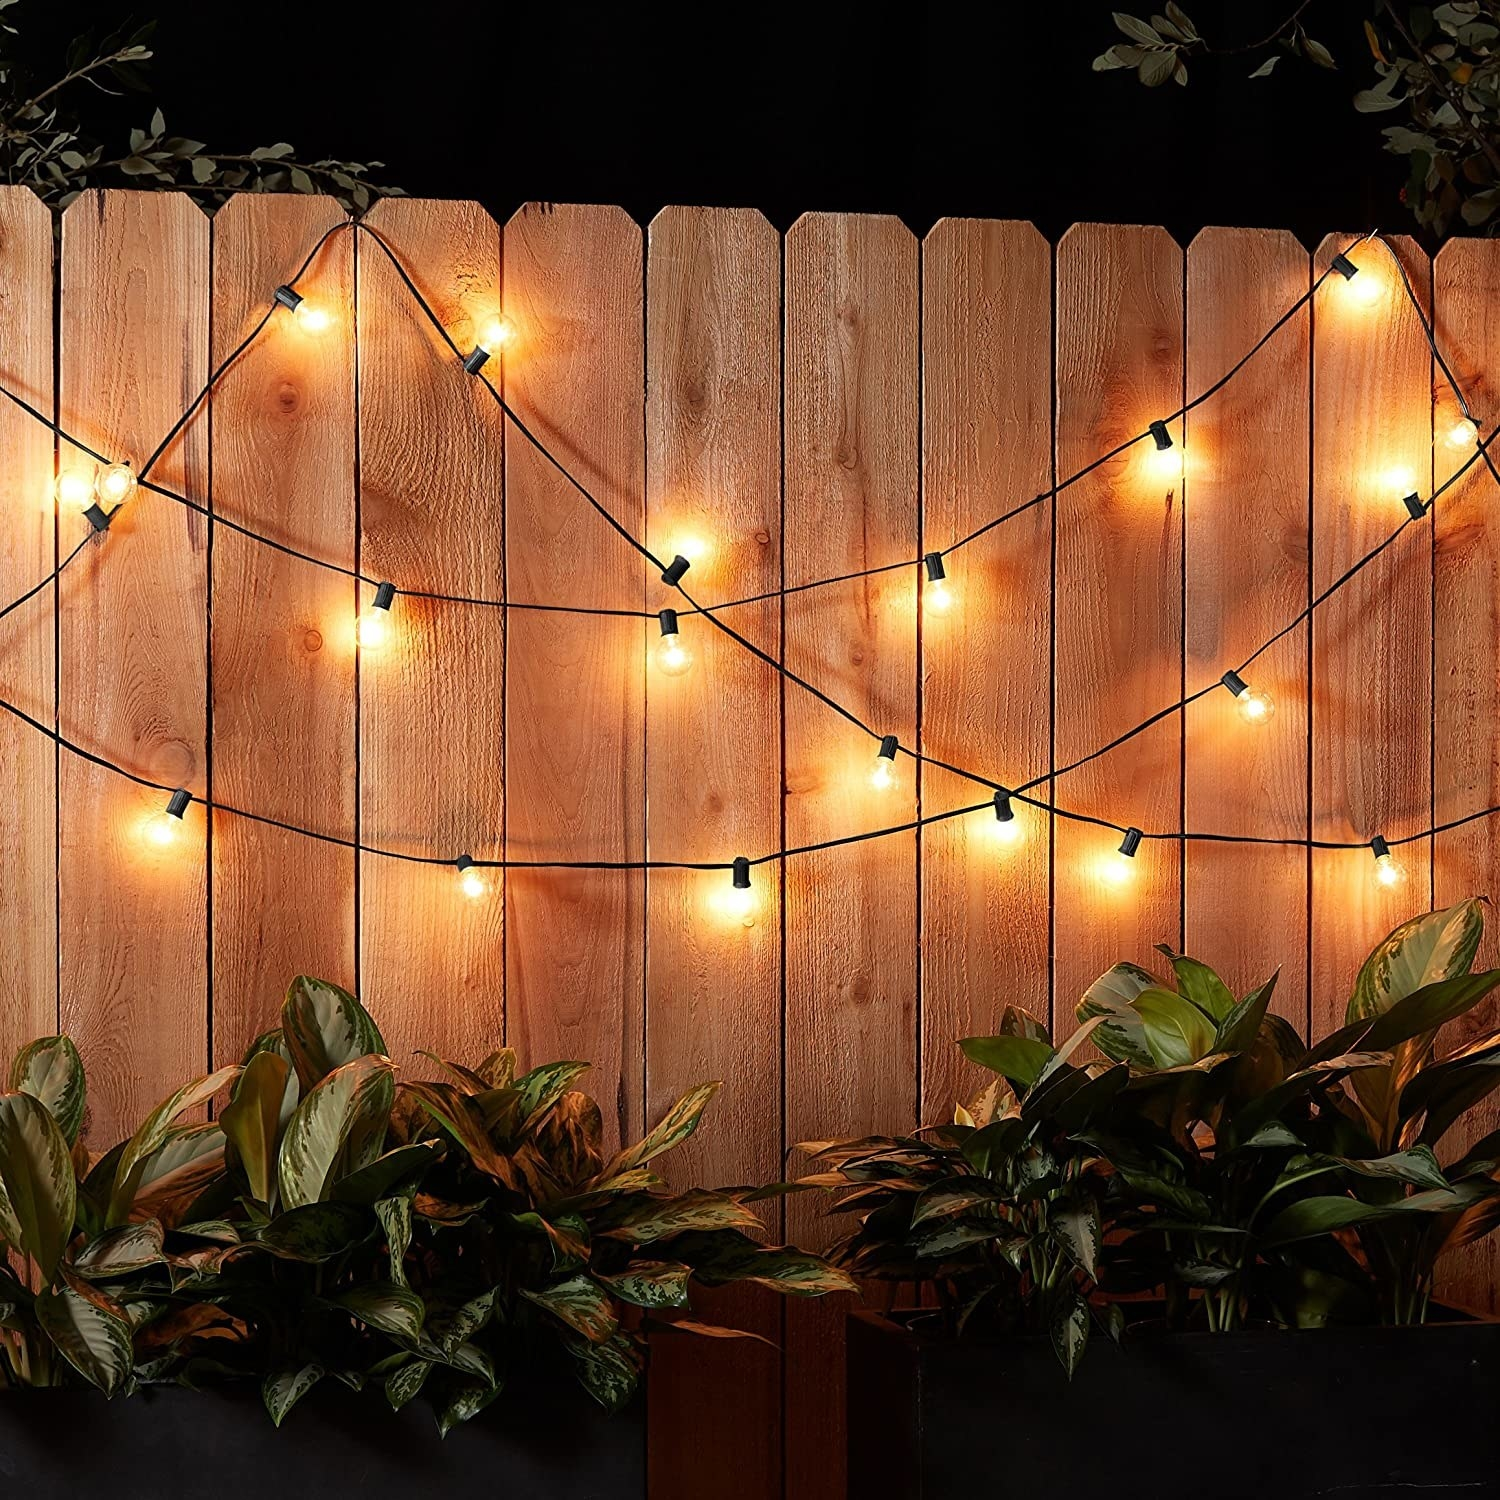 warm, glowing lights on a string in an outdoor space